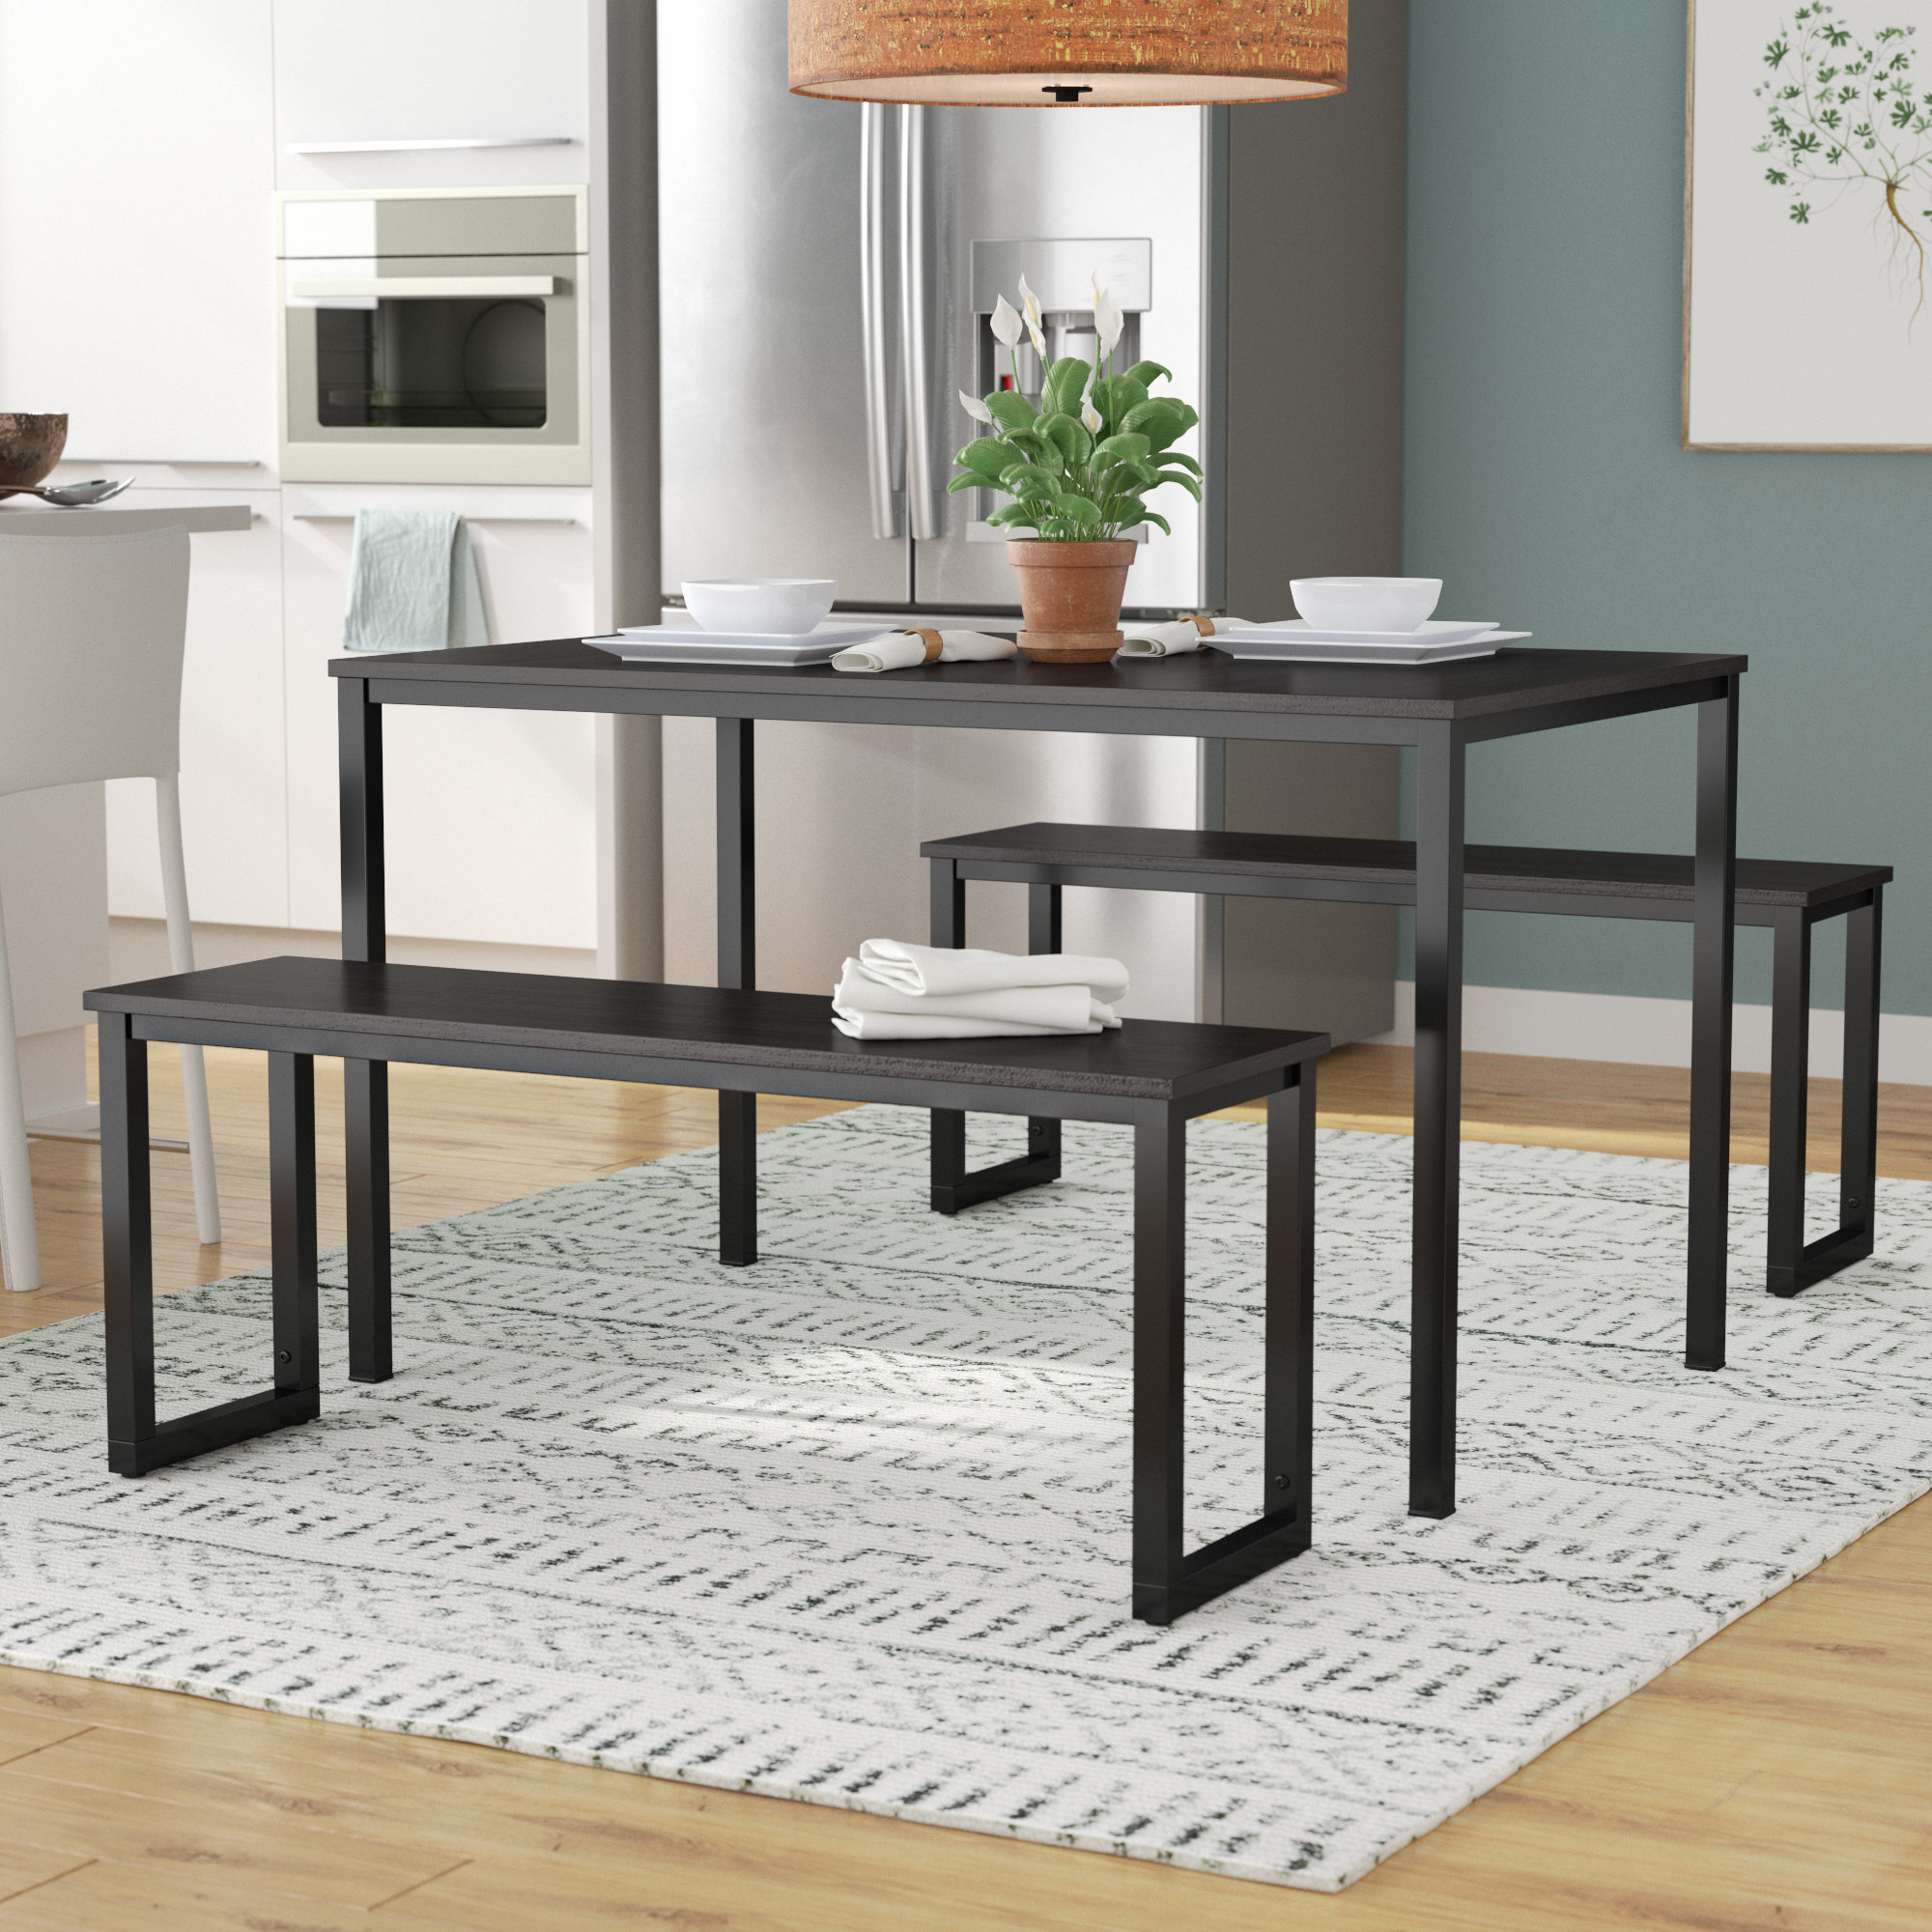 Frida 3 Piece Dining Table Set Within Best And Newest Frida 3 Piece Dining Table Sets (Gallery 2 of 20)